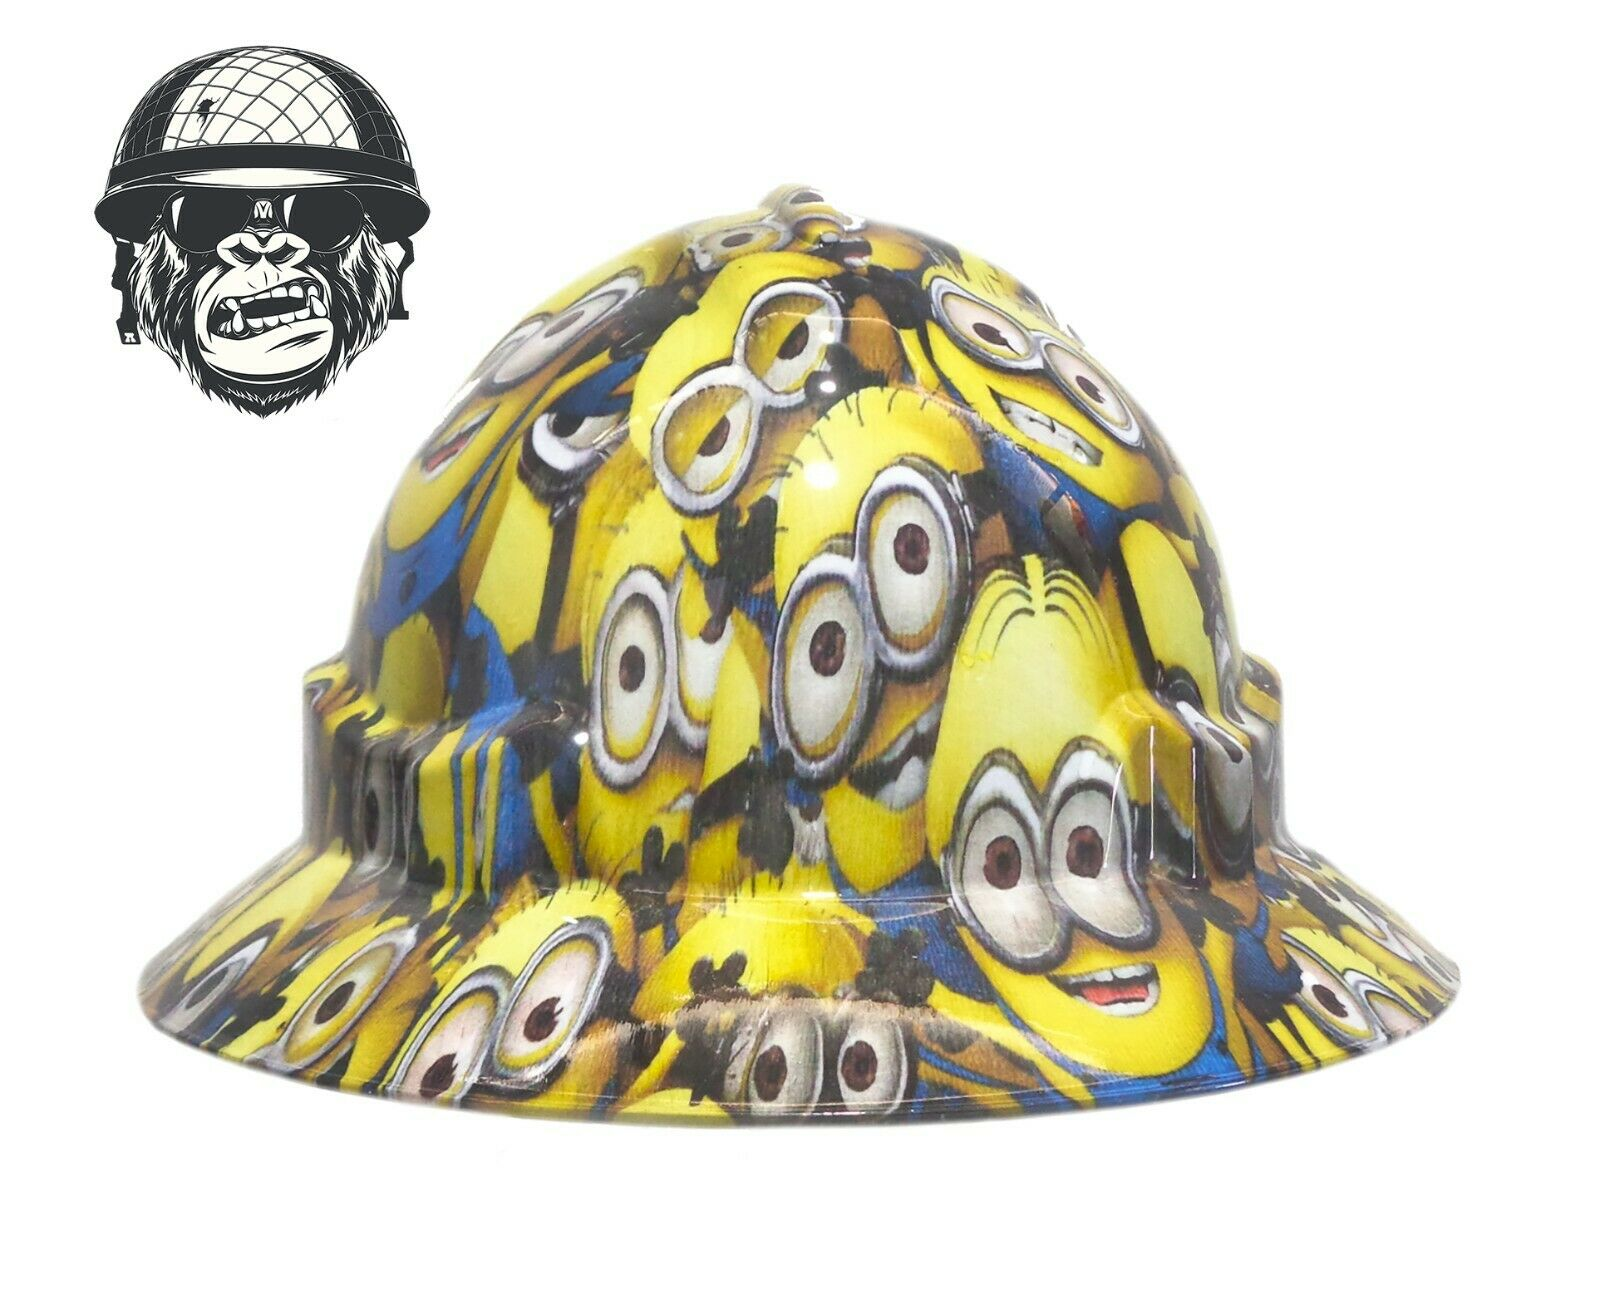 Custom Hydrographic Safety Hard Hat Mining Industrial PPE - MINIONS WIDE